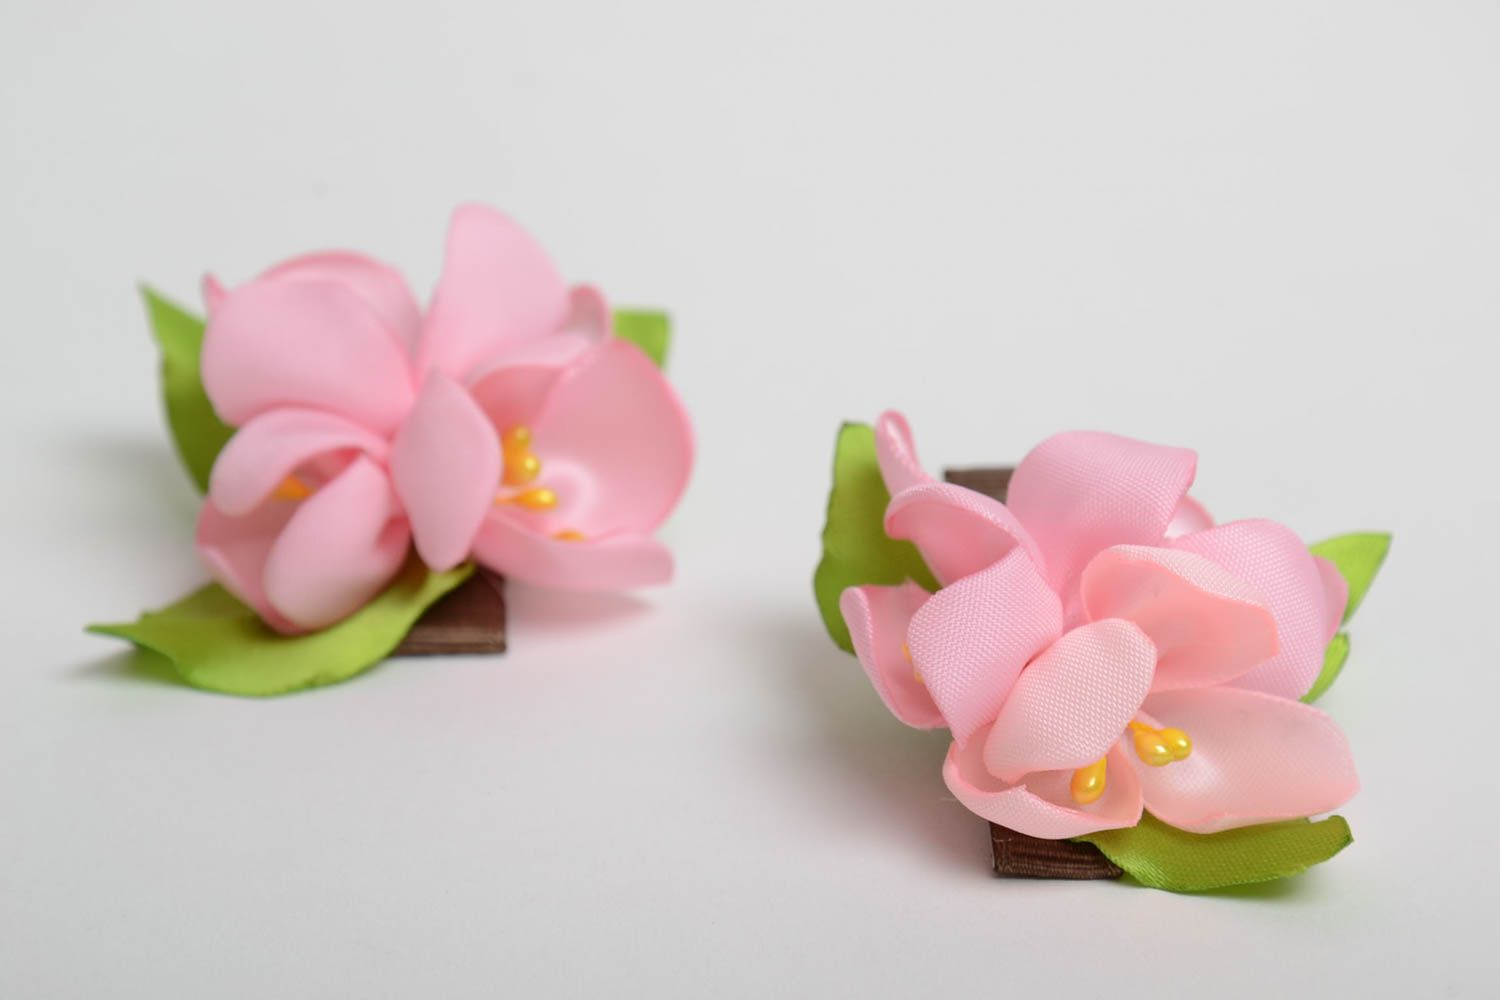 Handmade hair accessories jewelry set 2 hair clips flowers for hair gift for her photo 4